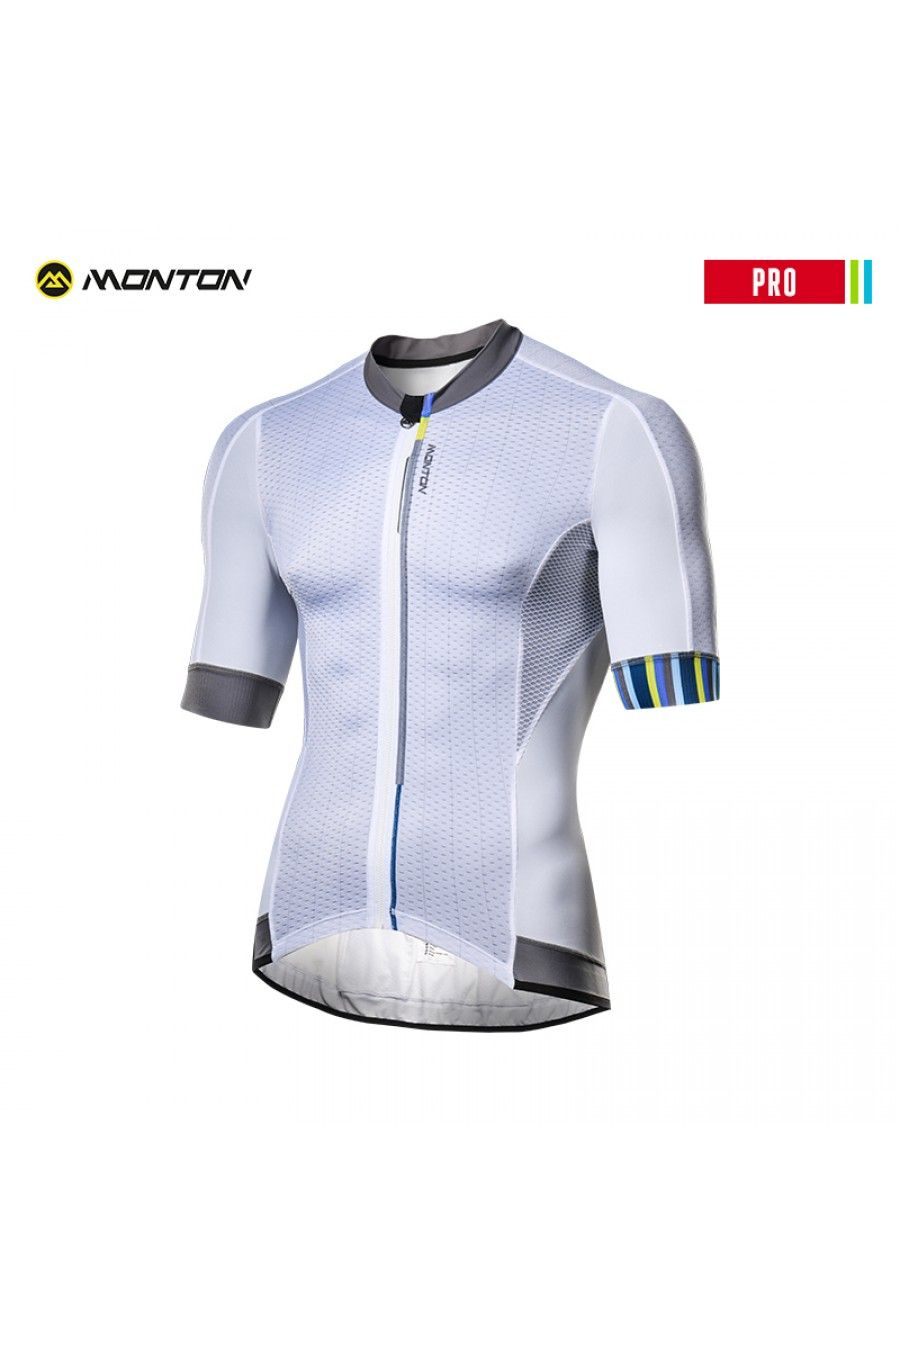 a00f53293 Plain white cycling jersey. Plain white cycling jersey Cycling Gear ...